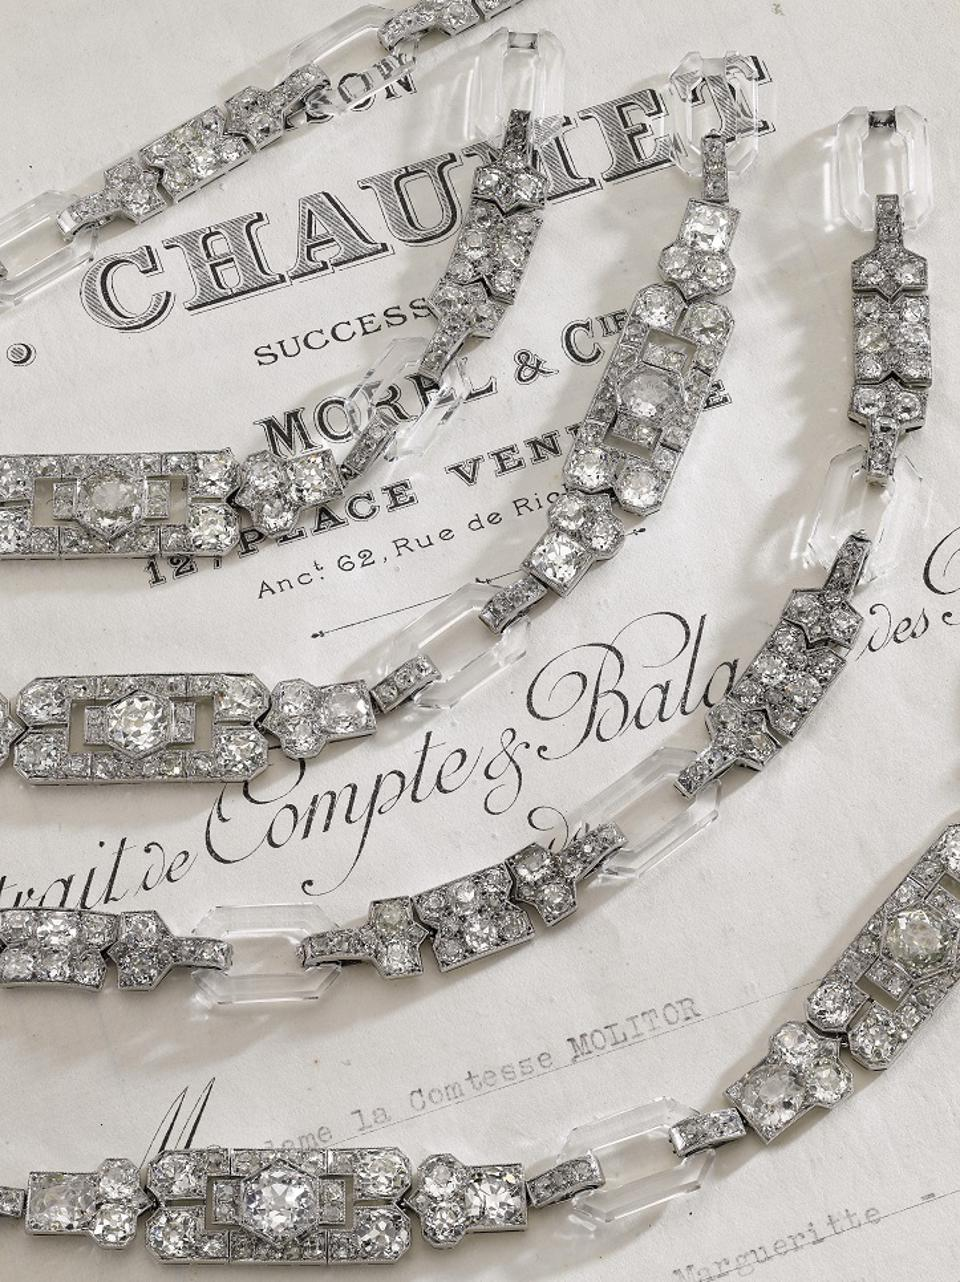 Magnificent Jewels and Noble Jewels Sotheby's Geneva November 13, 2019